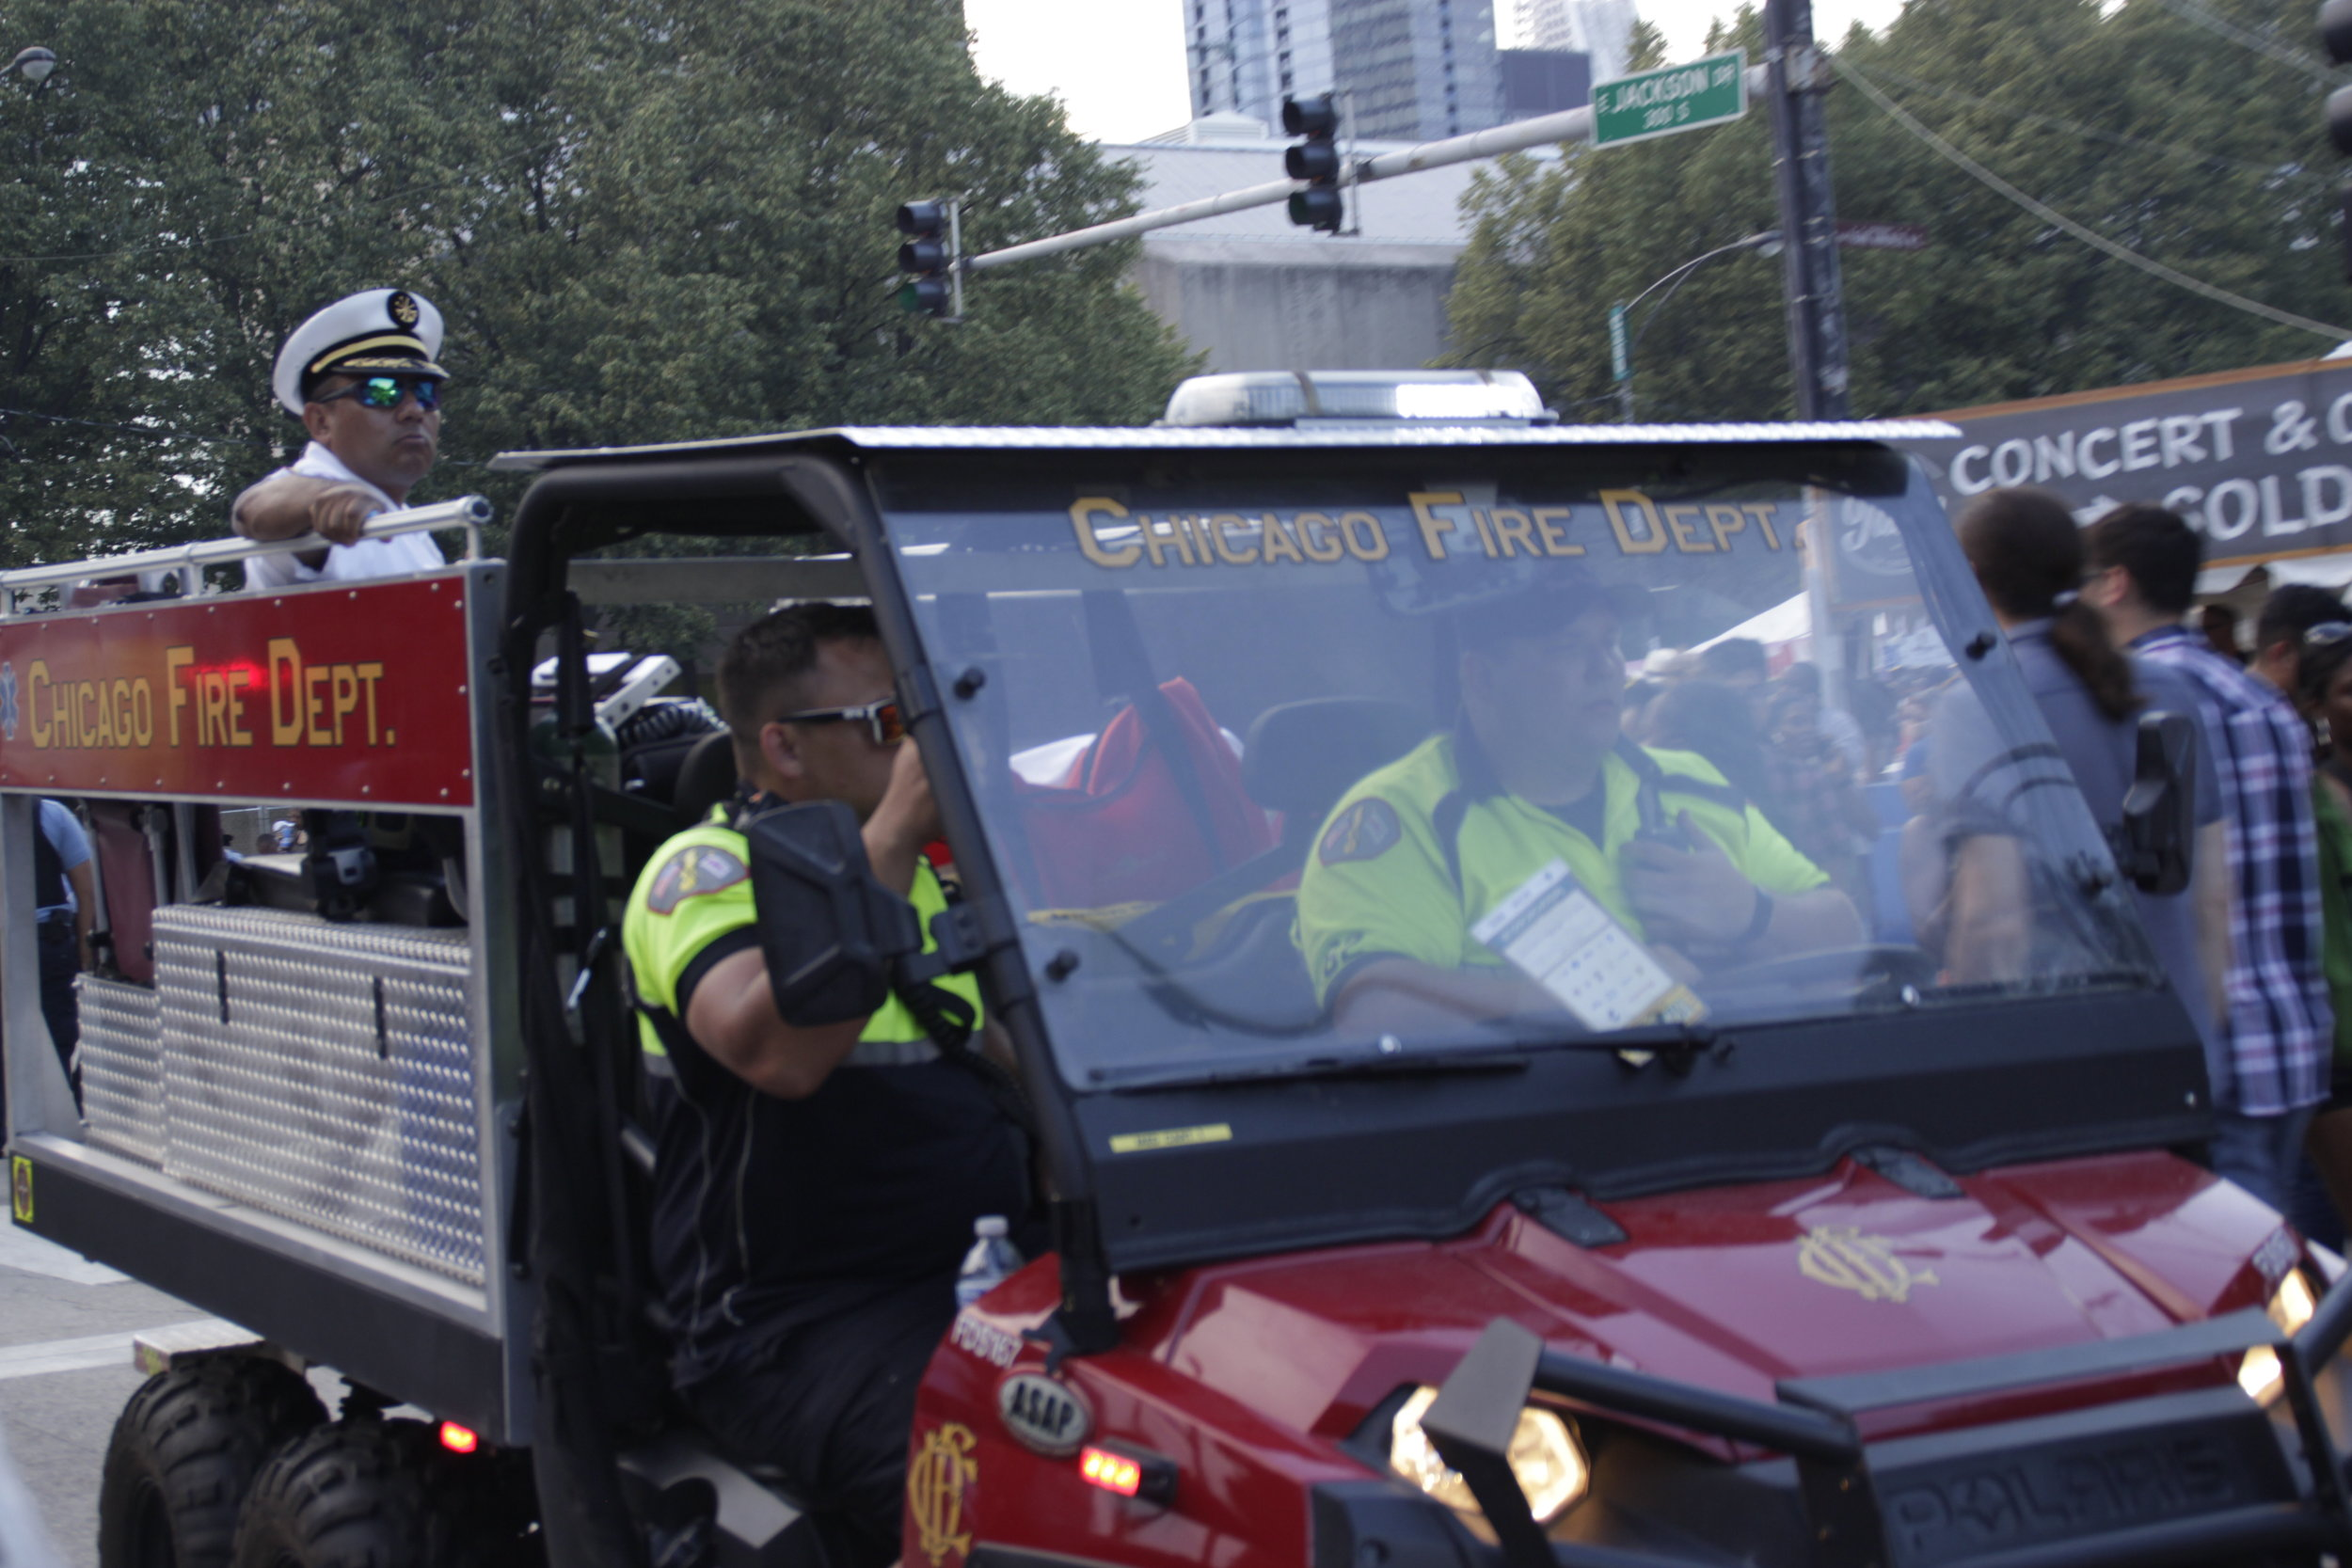 Chicago Fire Department had both foot and car patrols on site at the 2019 Taste of Chicago to assist with crowd control. Other security included Chicago Police Department, undercover police officers with vests, United Security, traffic and parking enforcement and event staff.